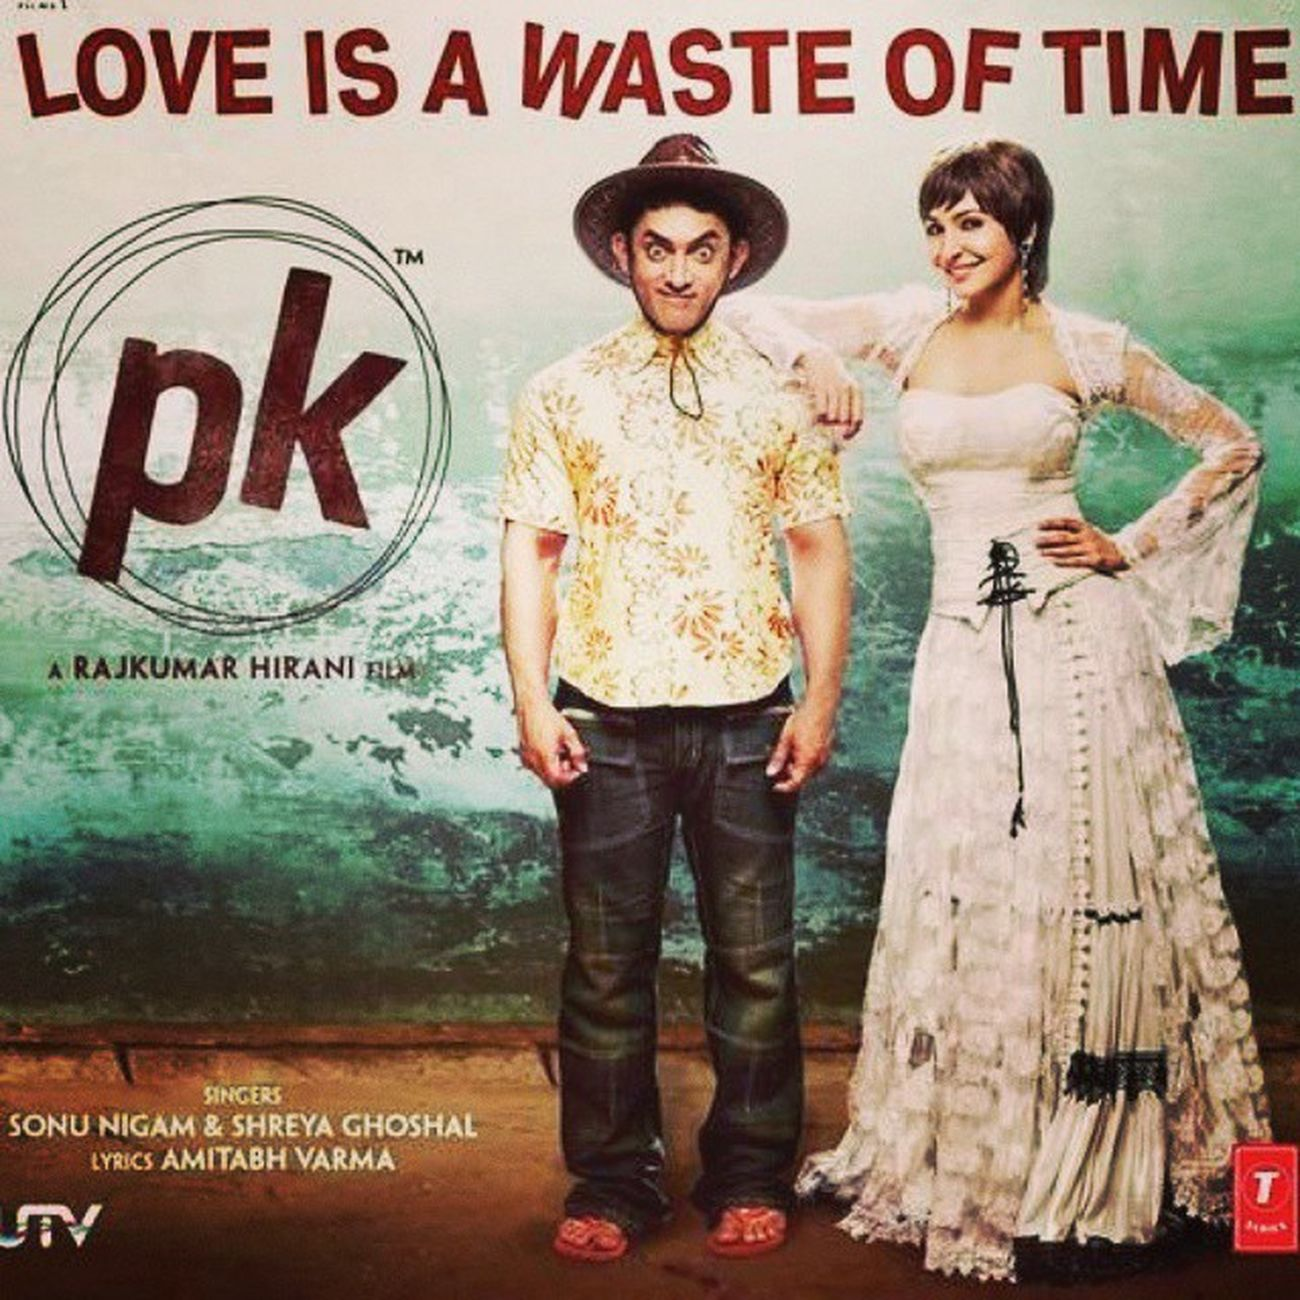 Foolishly in love with this song ^_^ Bhasteoftime Loveisawasteoftime Pk Loop cutesong inlove anushka favorite